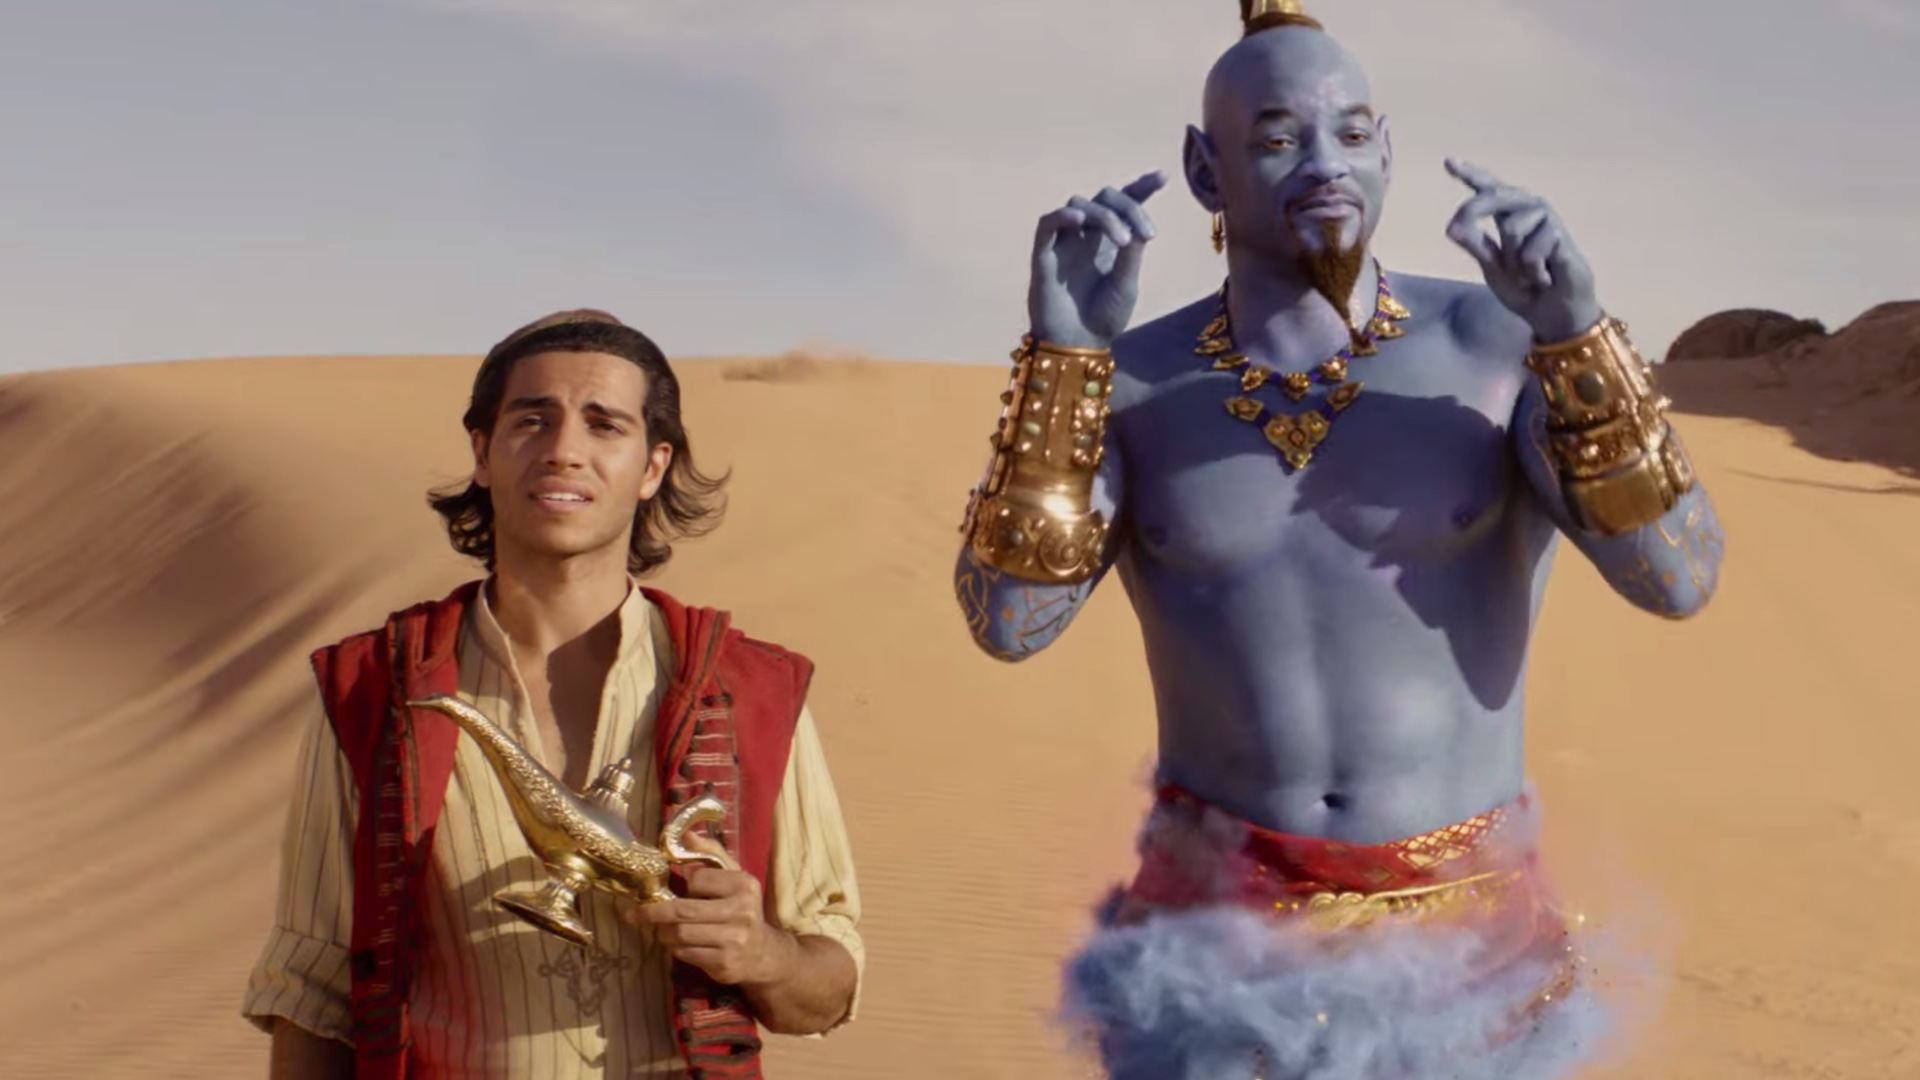 Will Smith as the Genie... it worked!